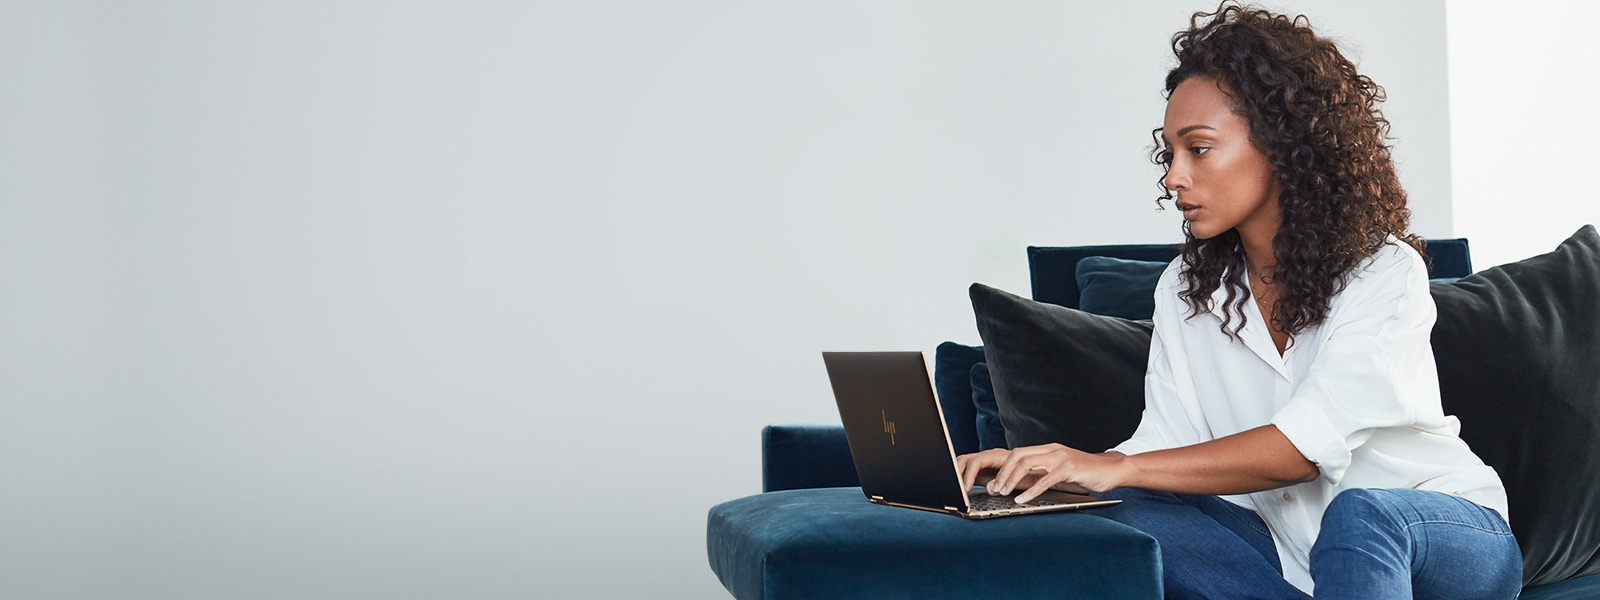 Woman sitting on a couch using a Windows 10 laptop